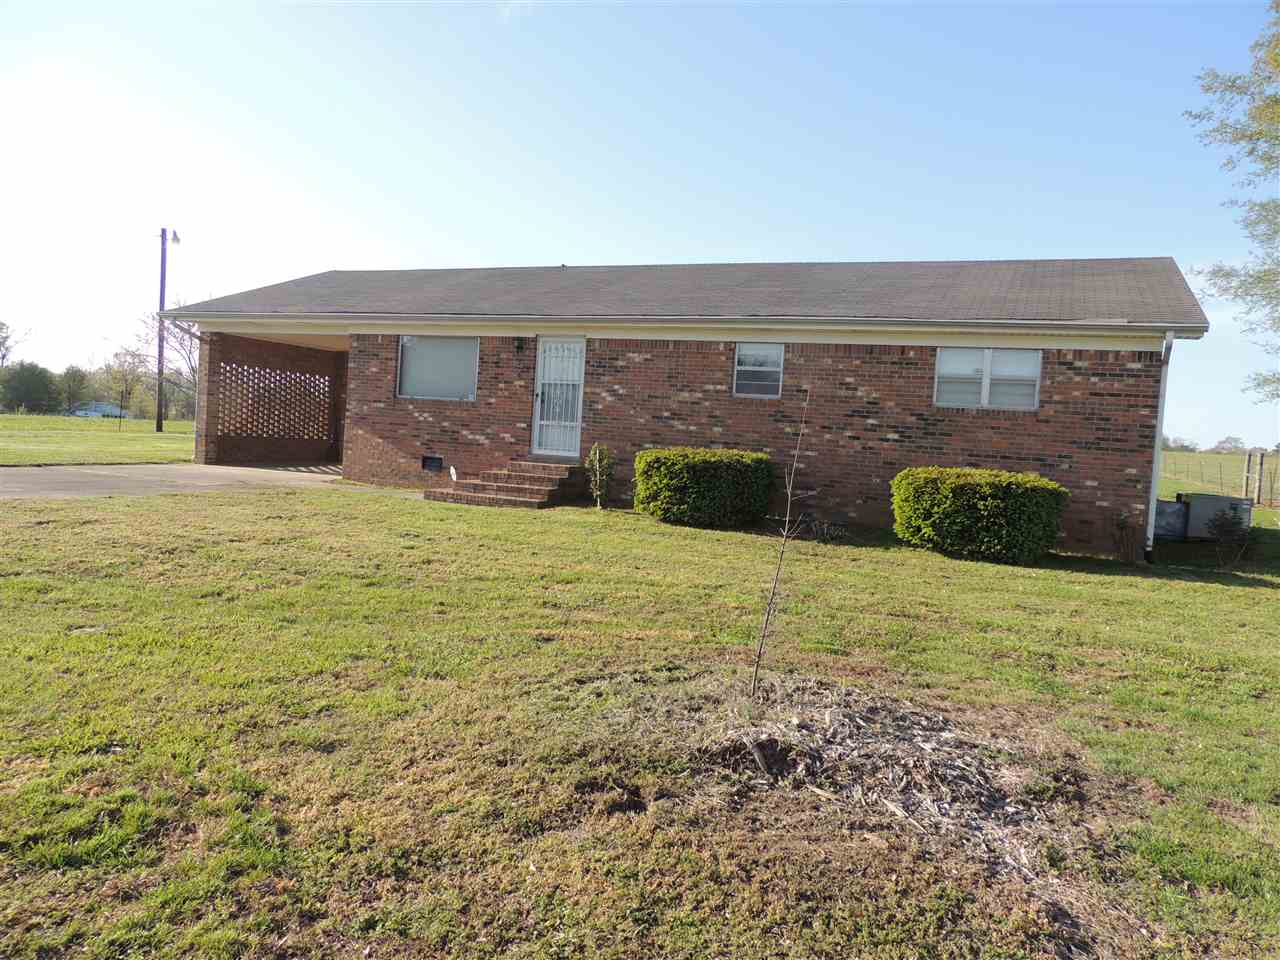 1412 Edgewood Rd,Newbern,Tennessee 38059,3 Bedrooms Bedrooms,2 BathroomsBathrooms,Residential,1412 Edgewood Rd,182364